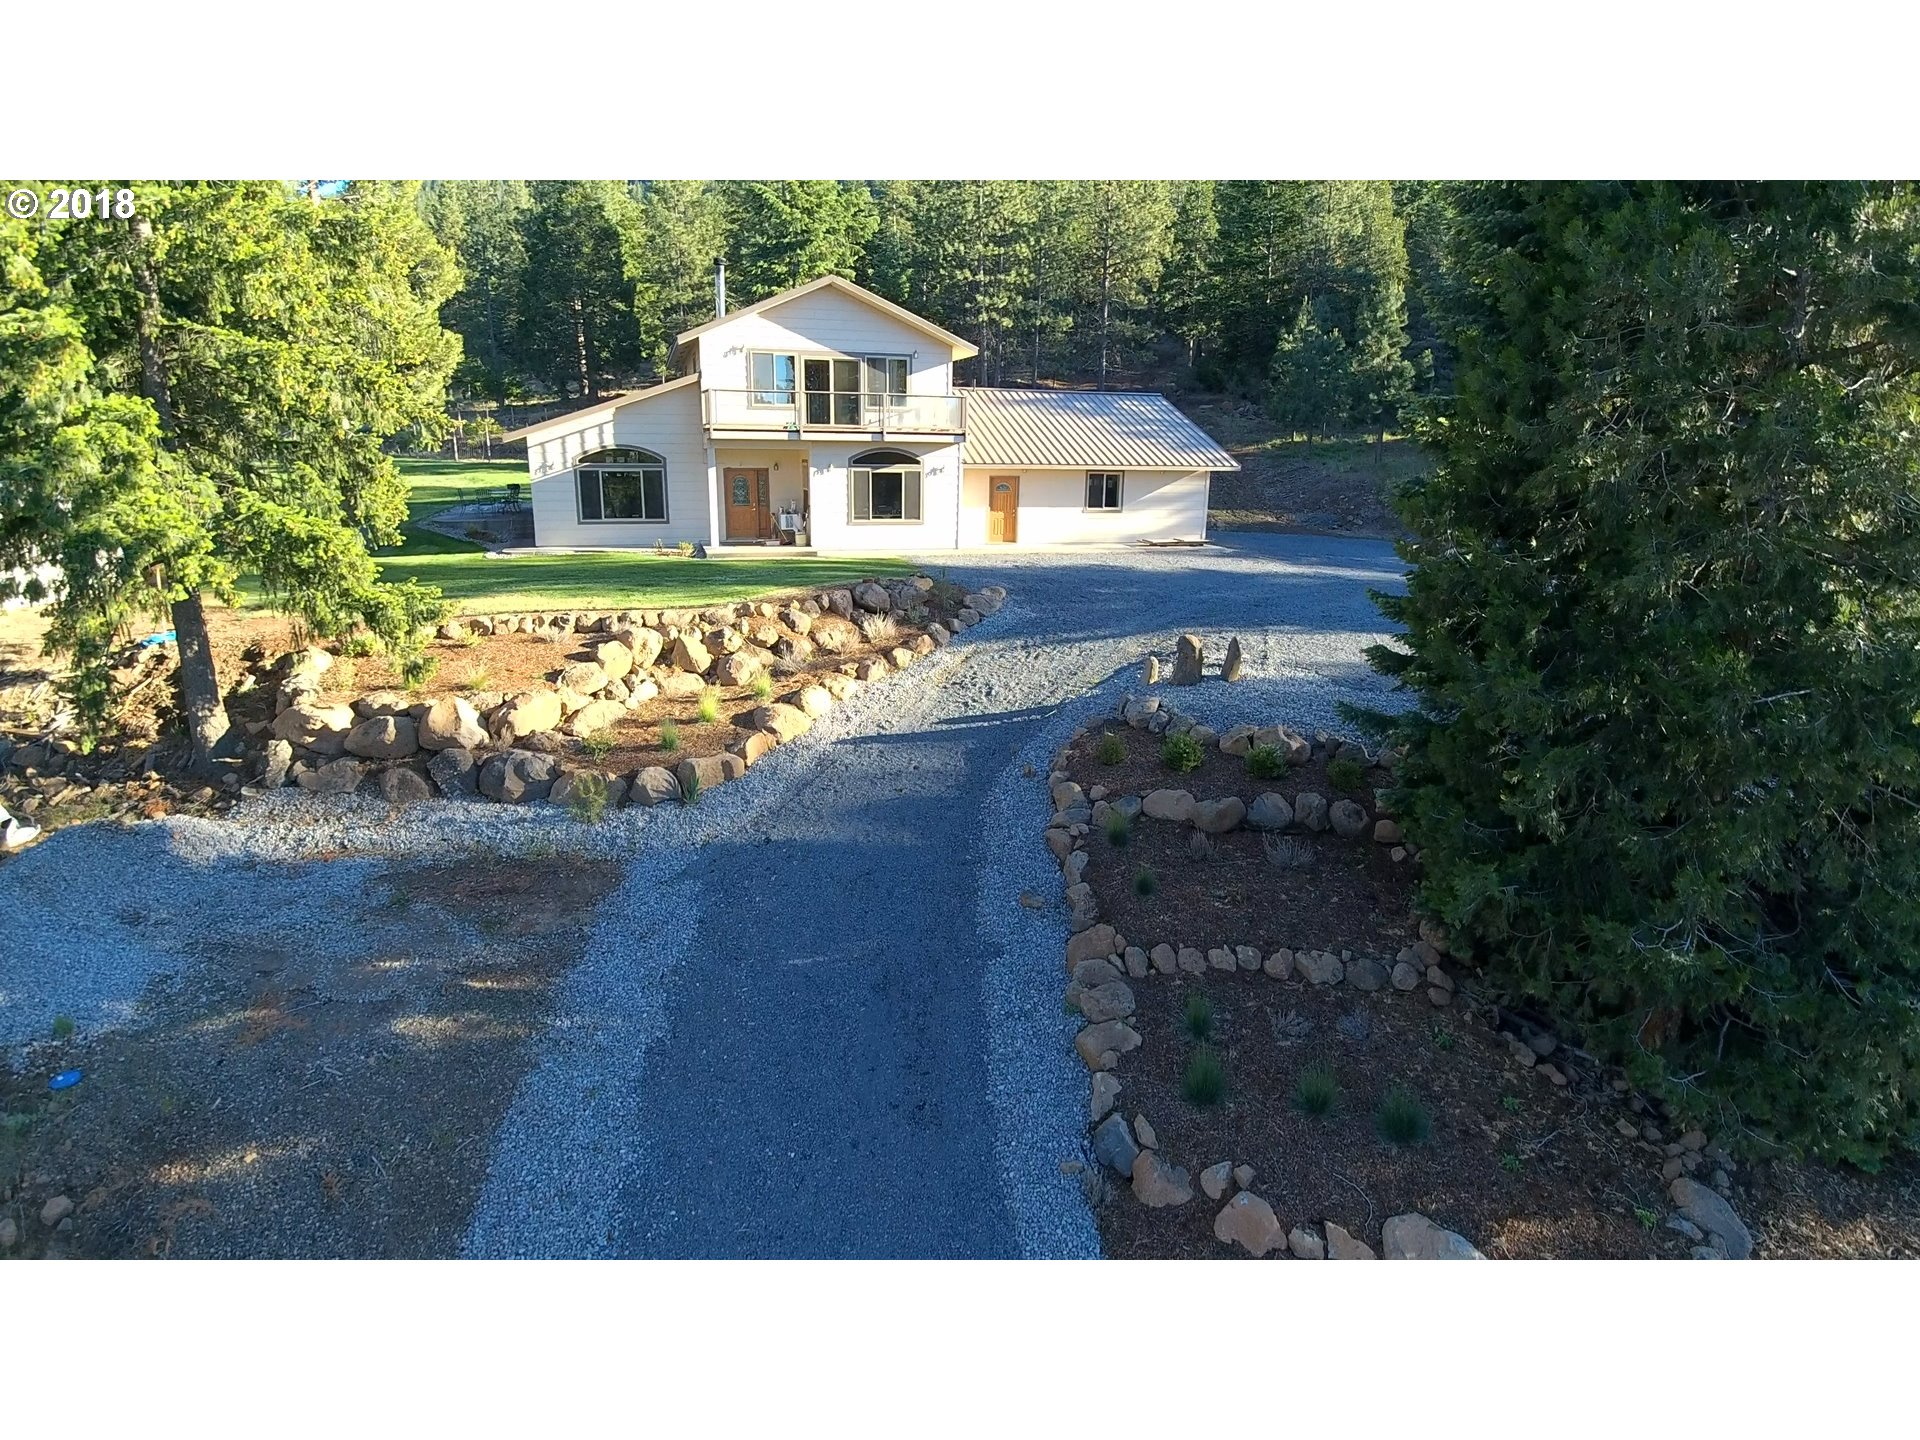 2375 sq. ft 4 bedrooms 2 bathrooms  House For Sale,Klamath Falls, OR